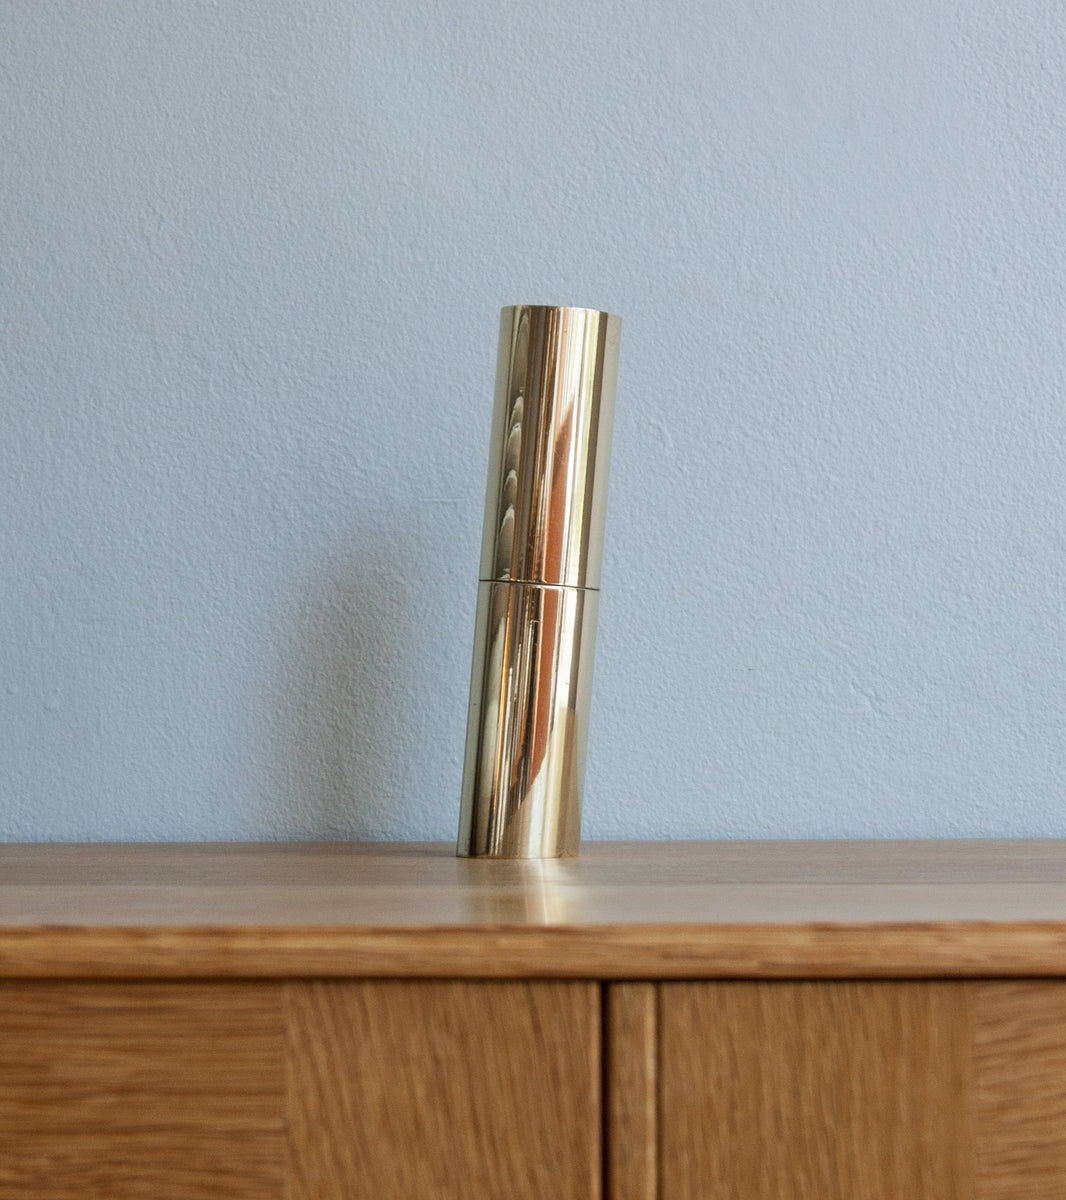 Modern Industrial Italic Mill - Polished Brass Michael Anastassiades & Carl Auböck  - Image 4